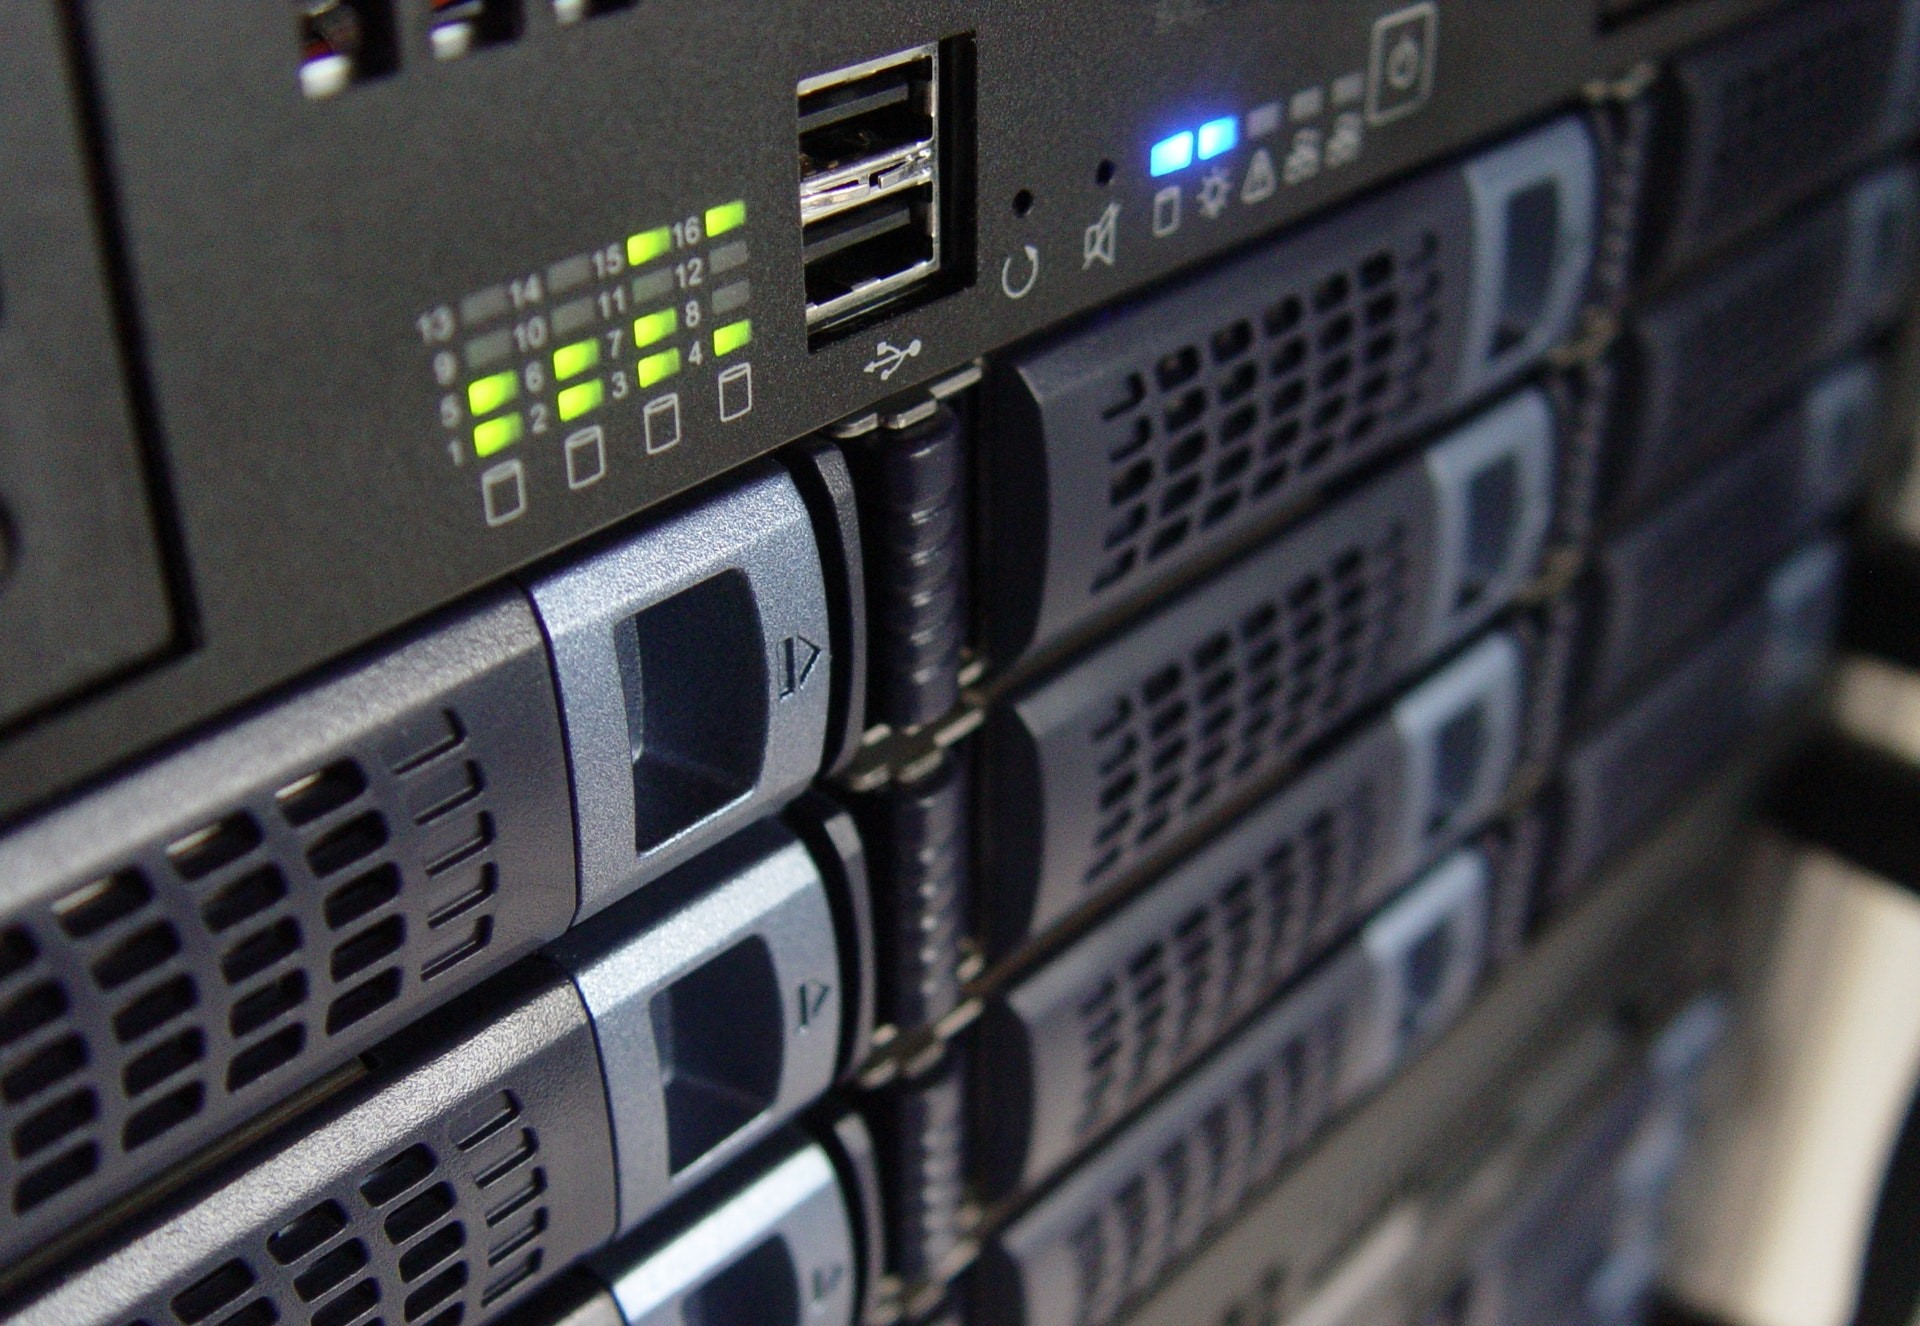 a close-up image of the front of a black server panel with hot-swappable hard drives, the blue and green system lights indicate the system is in great shape.